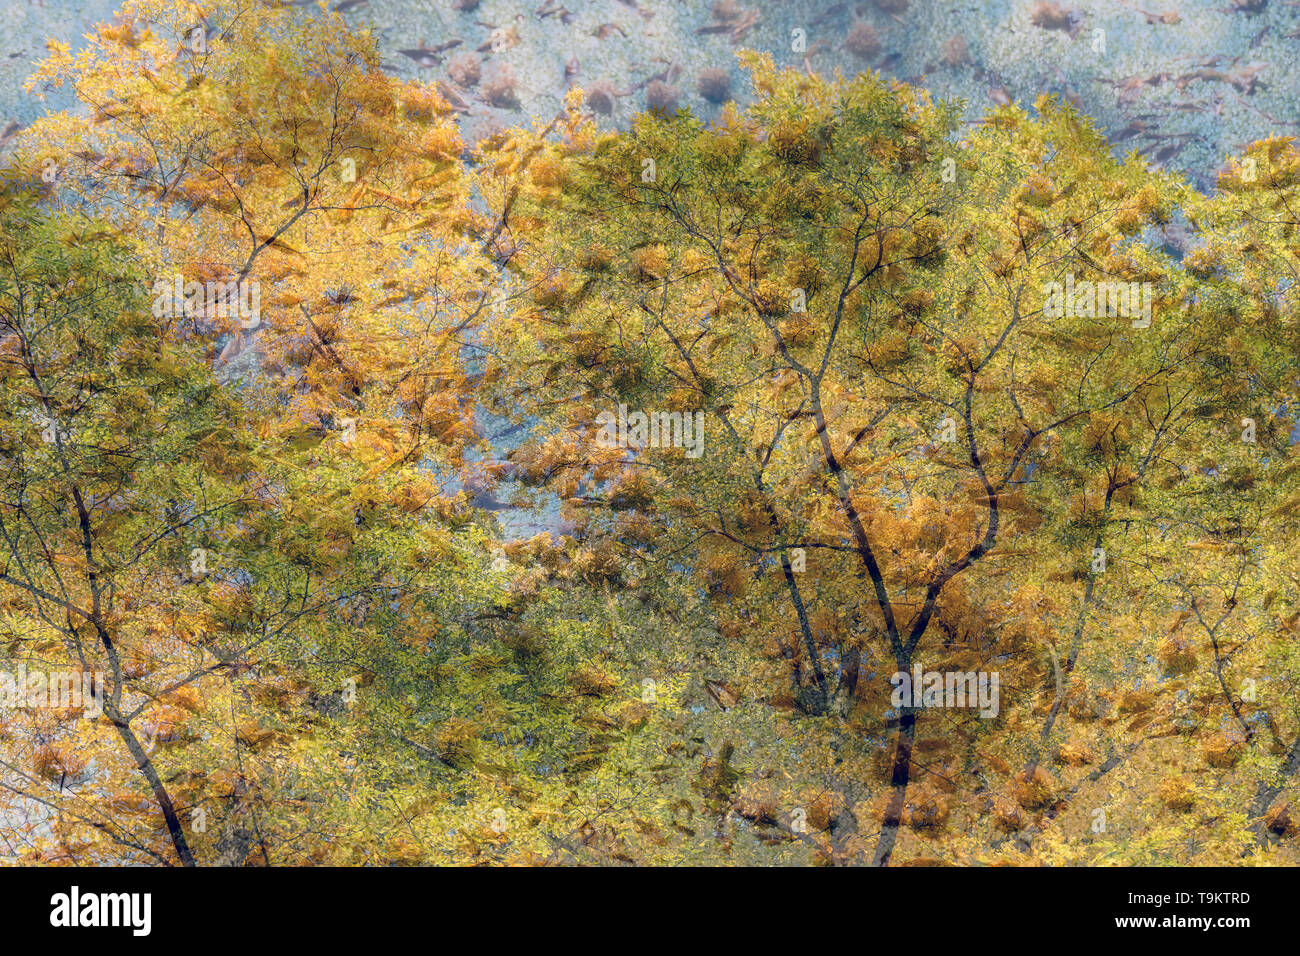 Double exposure image with frozen ice, duck weed and a autumn tree from below. - Stock Image